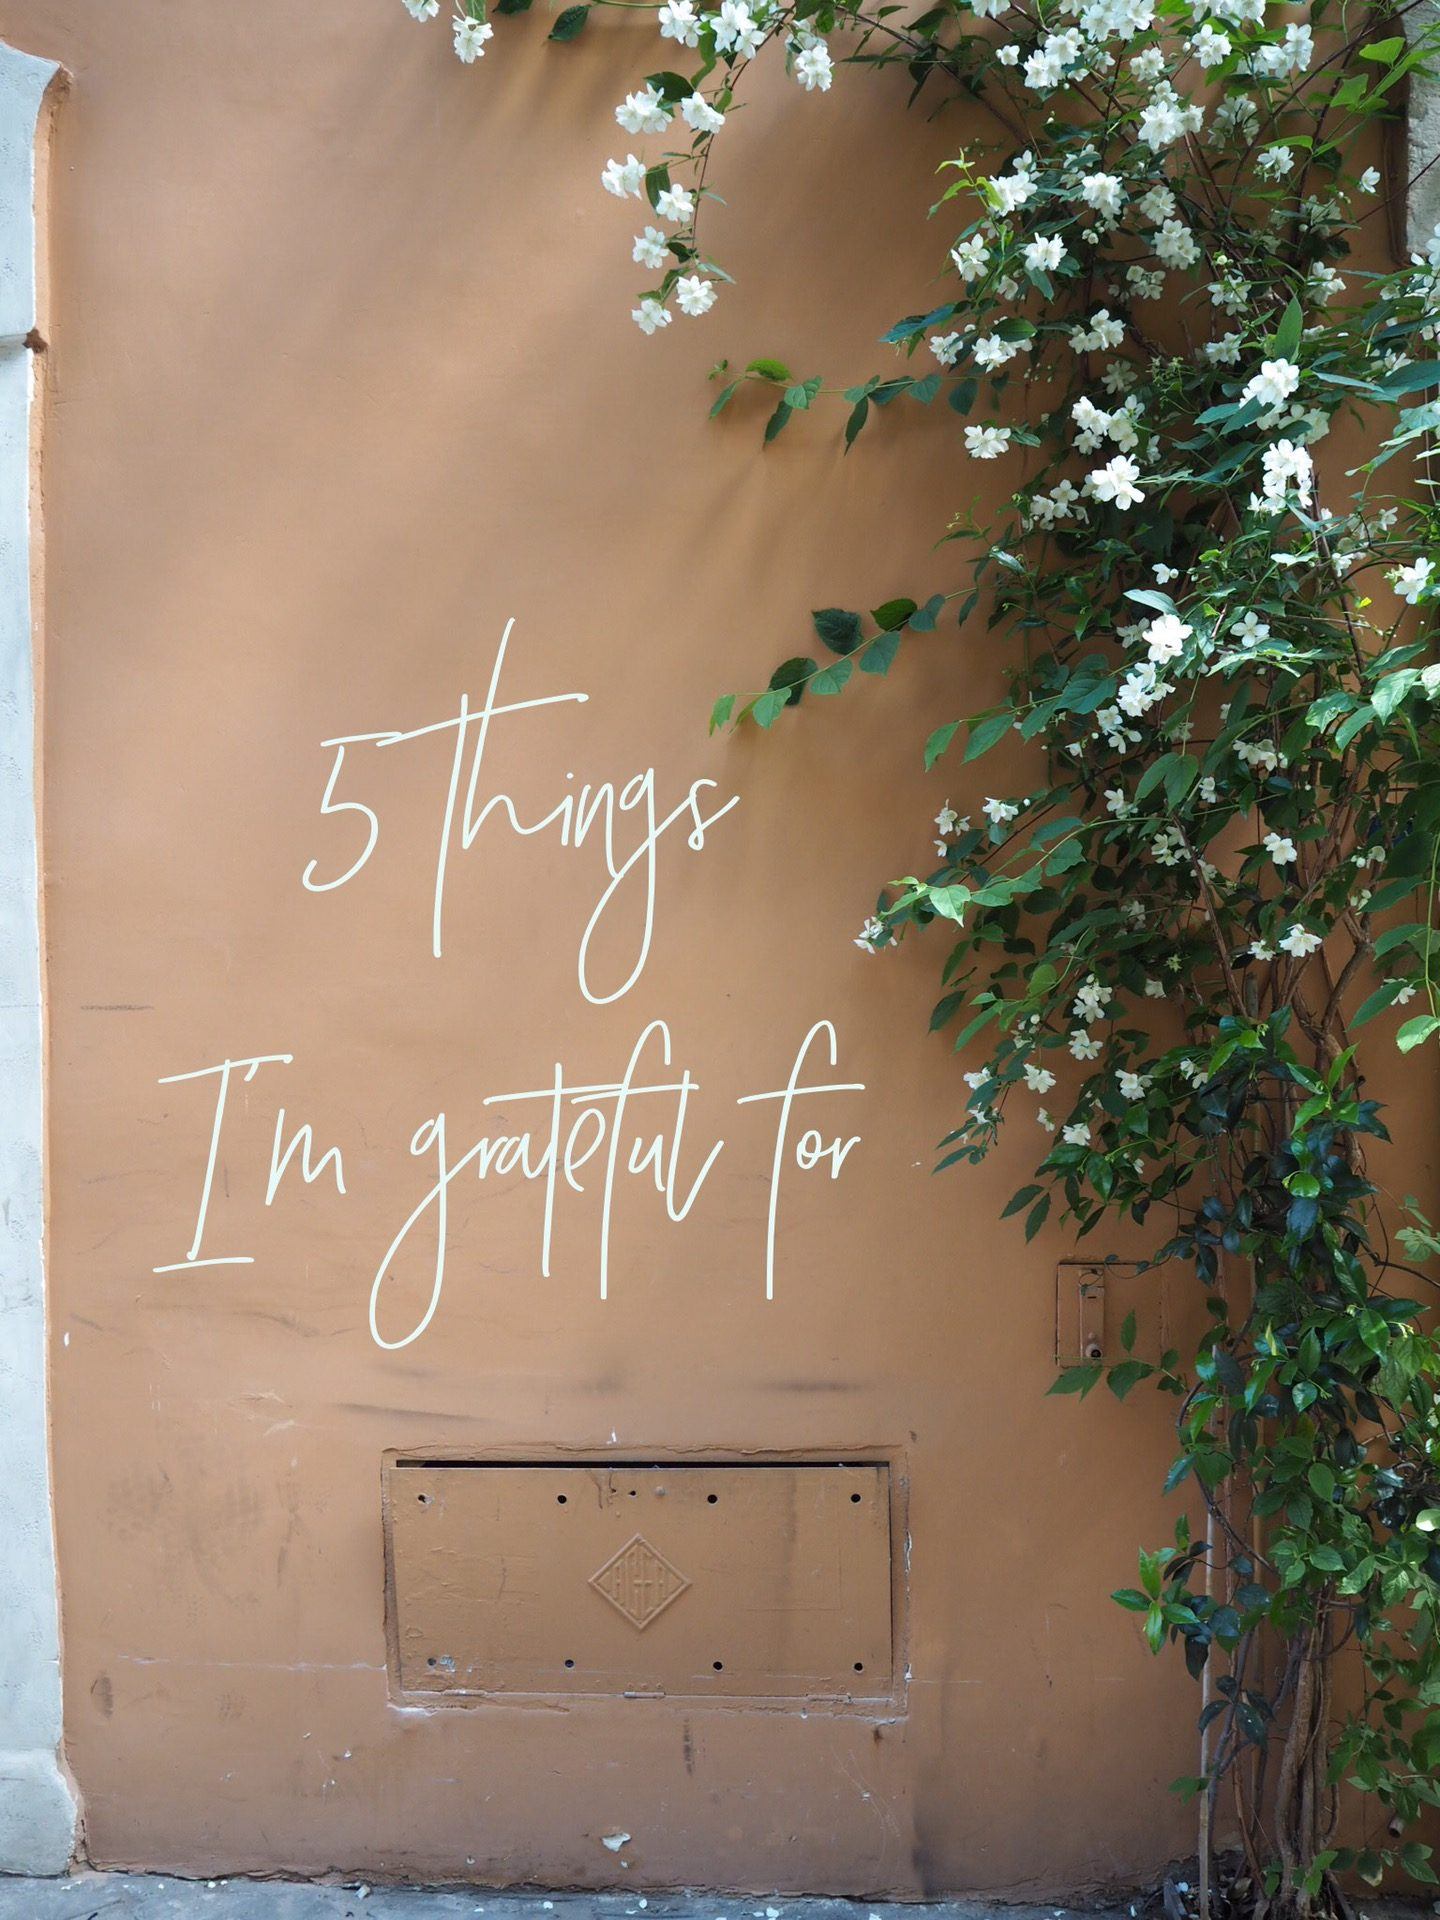 5 things I'm grateful for